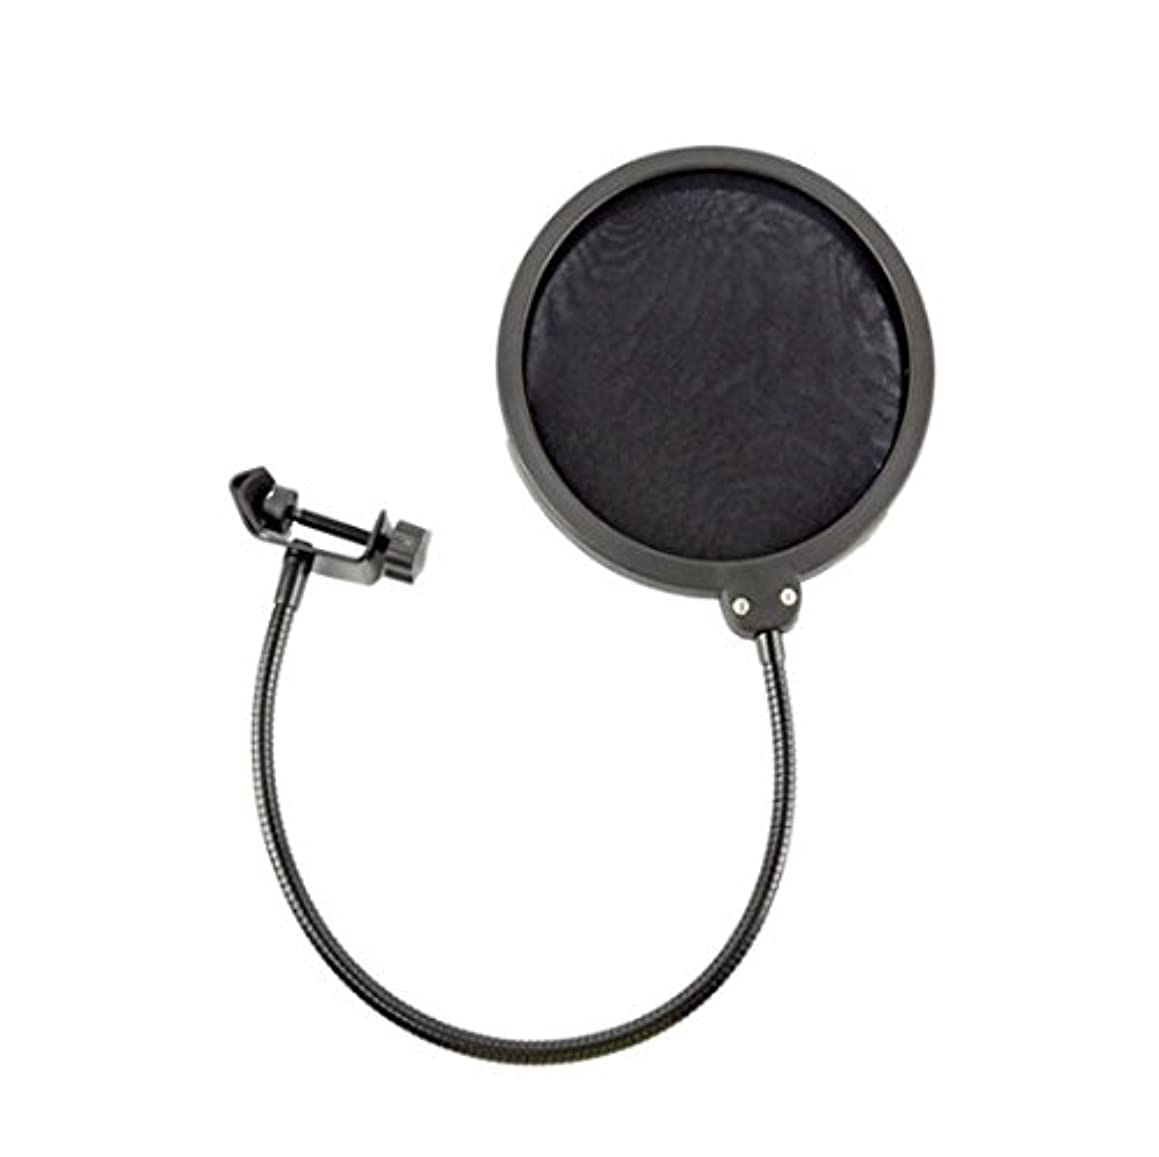 Epixel Double Layers Microphone Wind Screen Pop Filter,Mic Guard Shield For Recording With Flexible Gooseneck Holder& Metal Adjustable Clamp (Black)